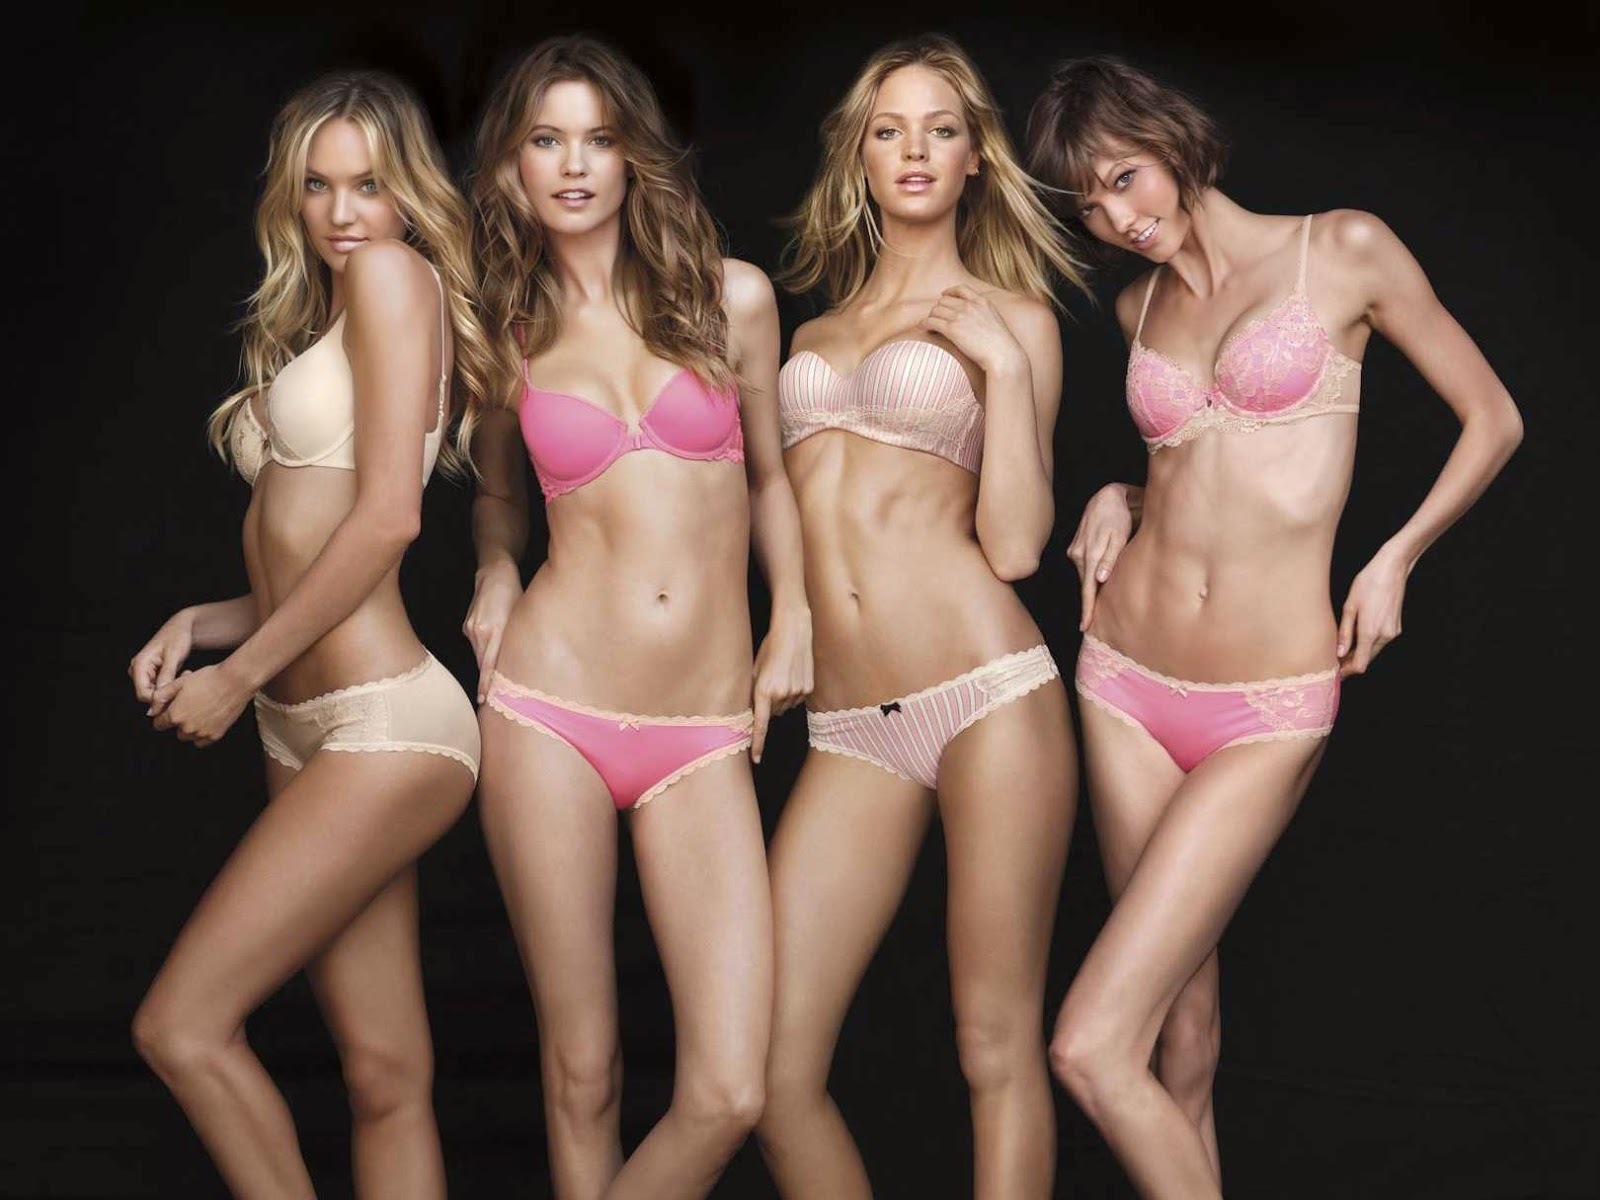 Victoria's Secret is one of the companies with the highest quality assured product quality in this time.